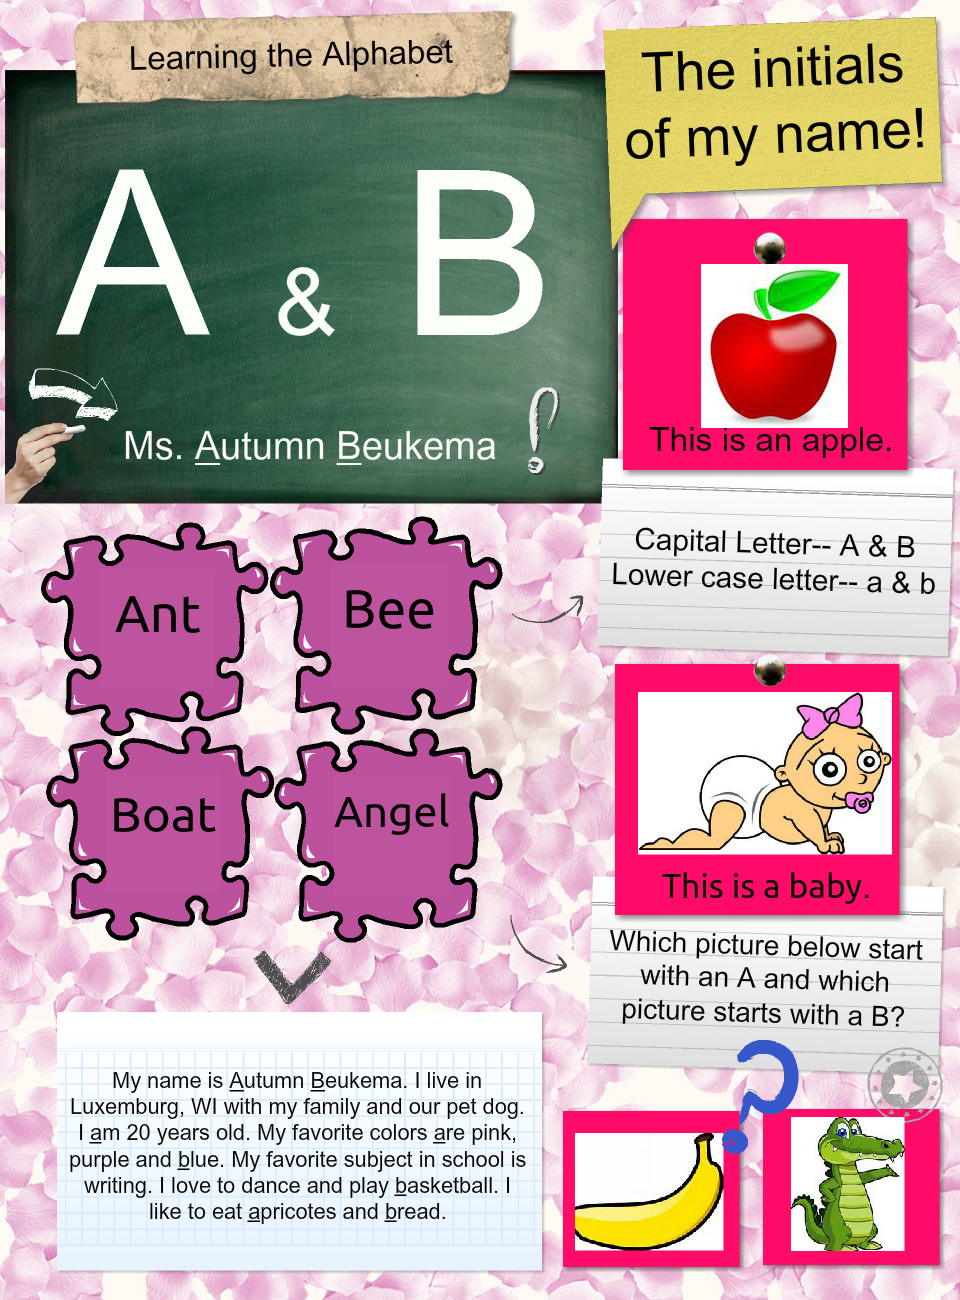 The Letters A & B: text, images, music, video | Glogster EDU ...